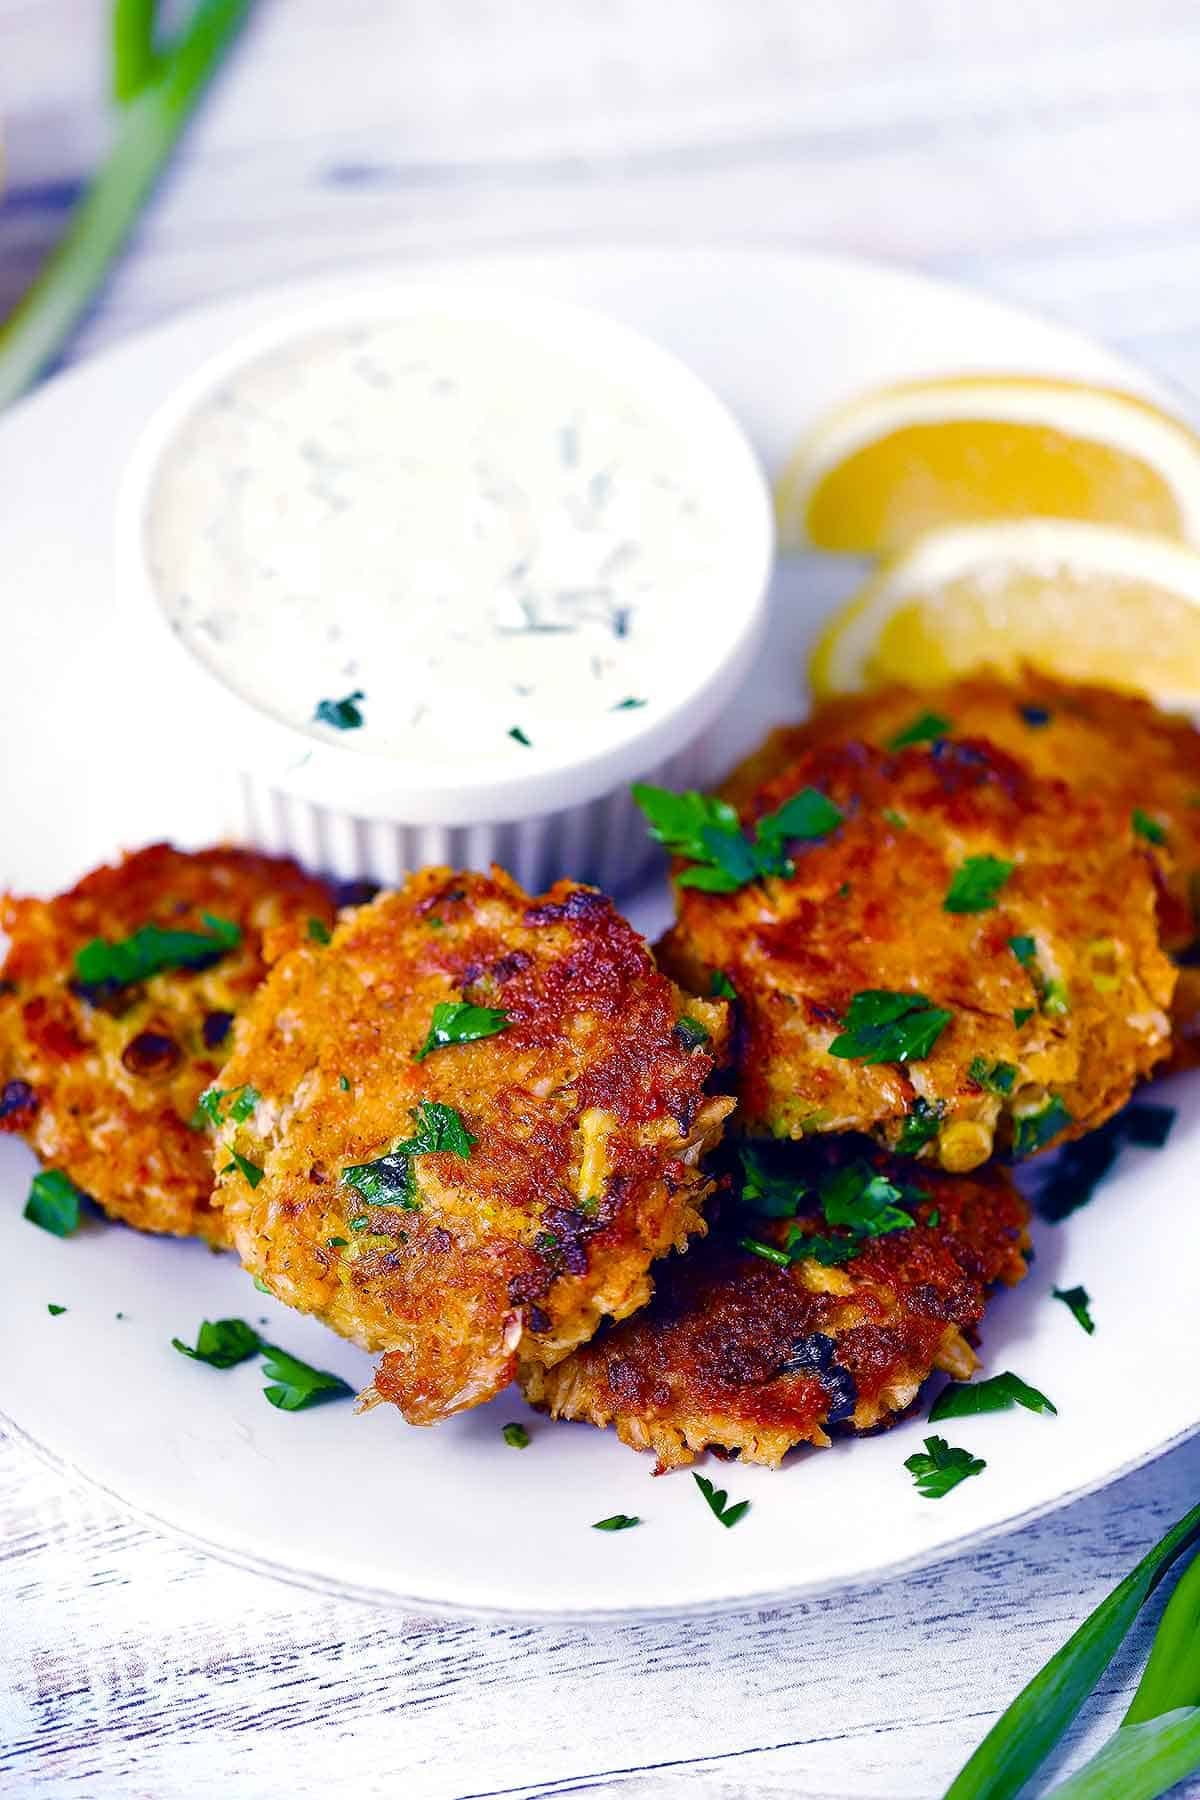 Crab cake patties on a white plate with tartar sauce and lemon wedges.